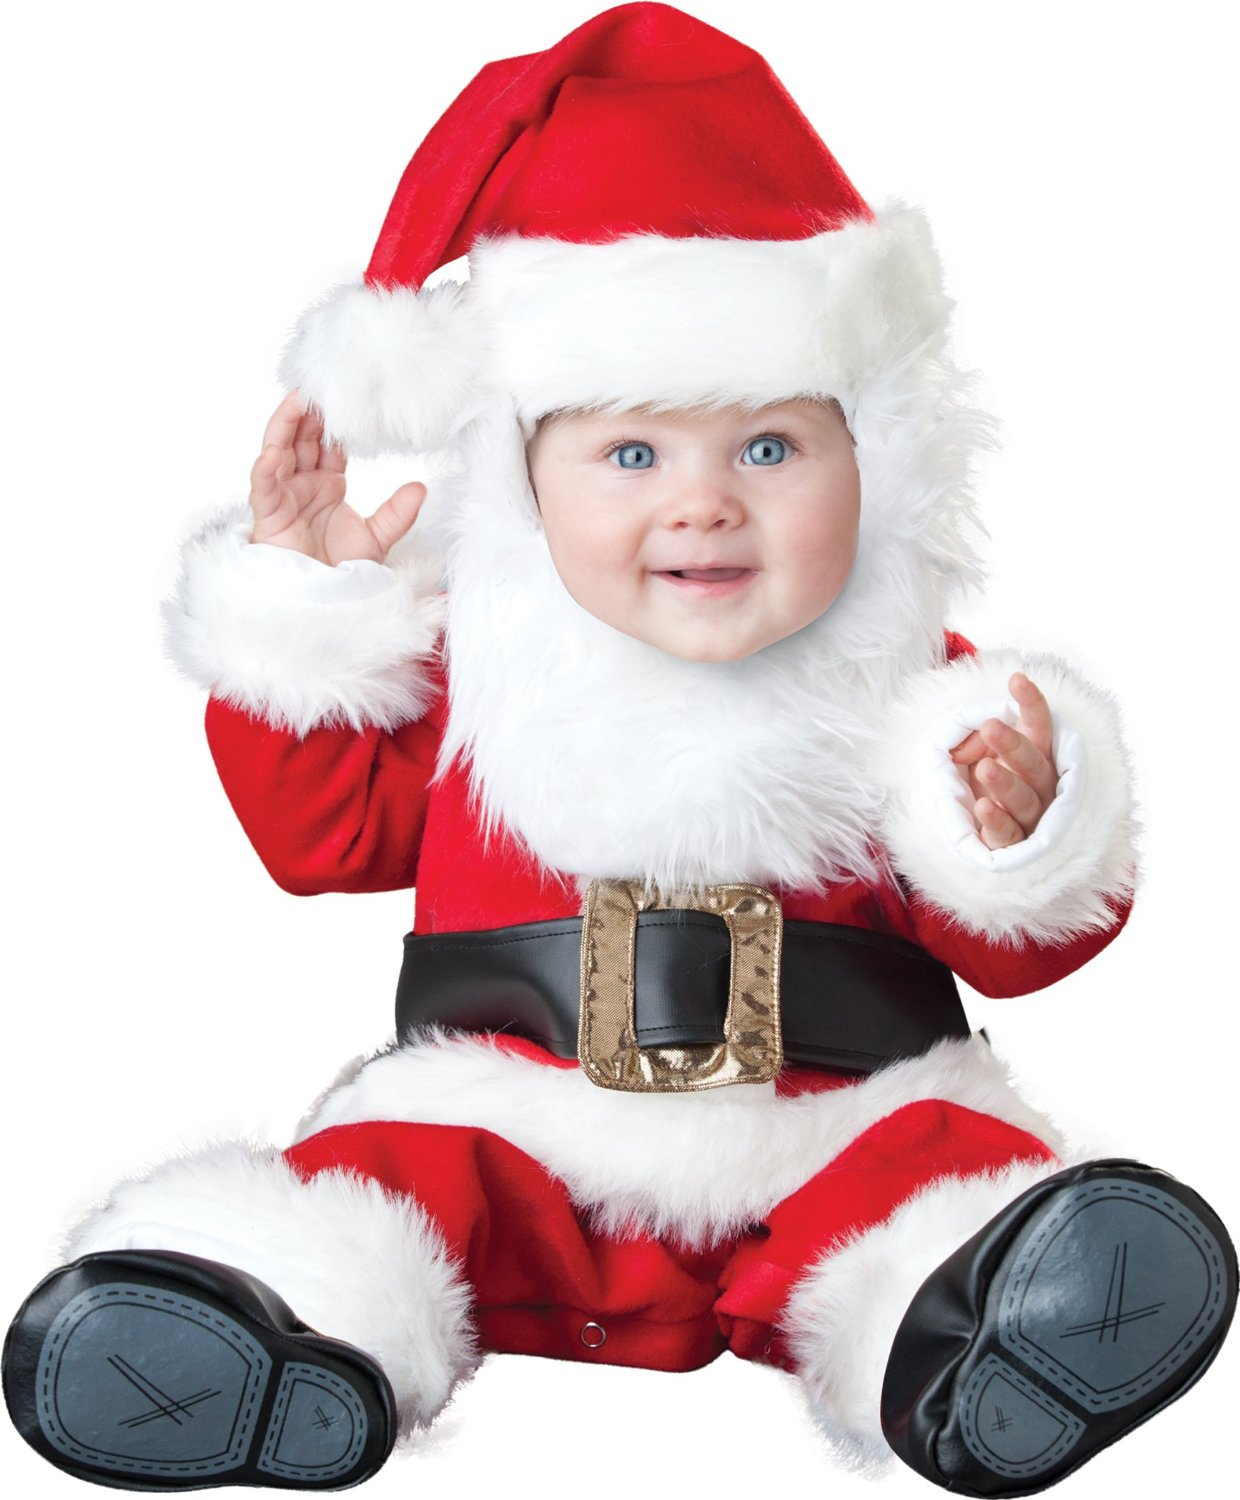 kids santa costume classy baby gear. Black Bedroom Furniture Sets. Home Design Ideas